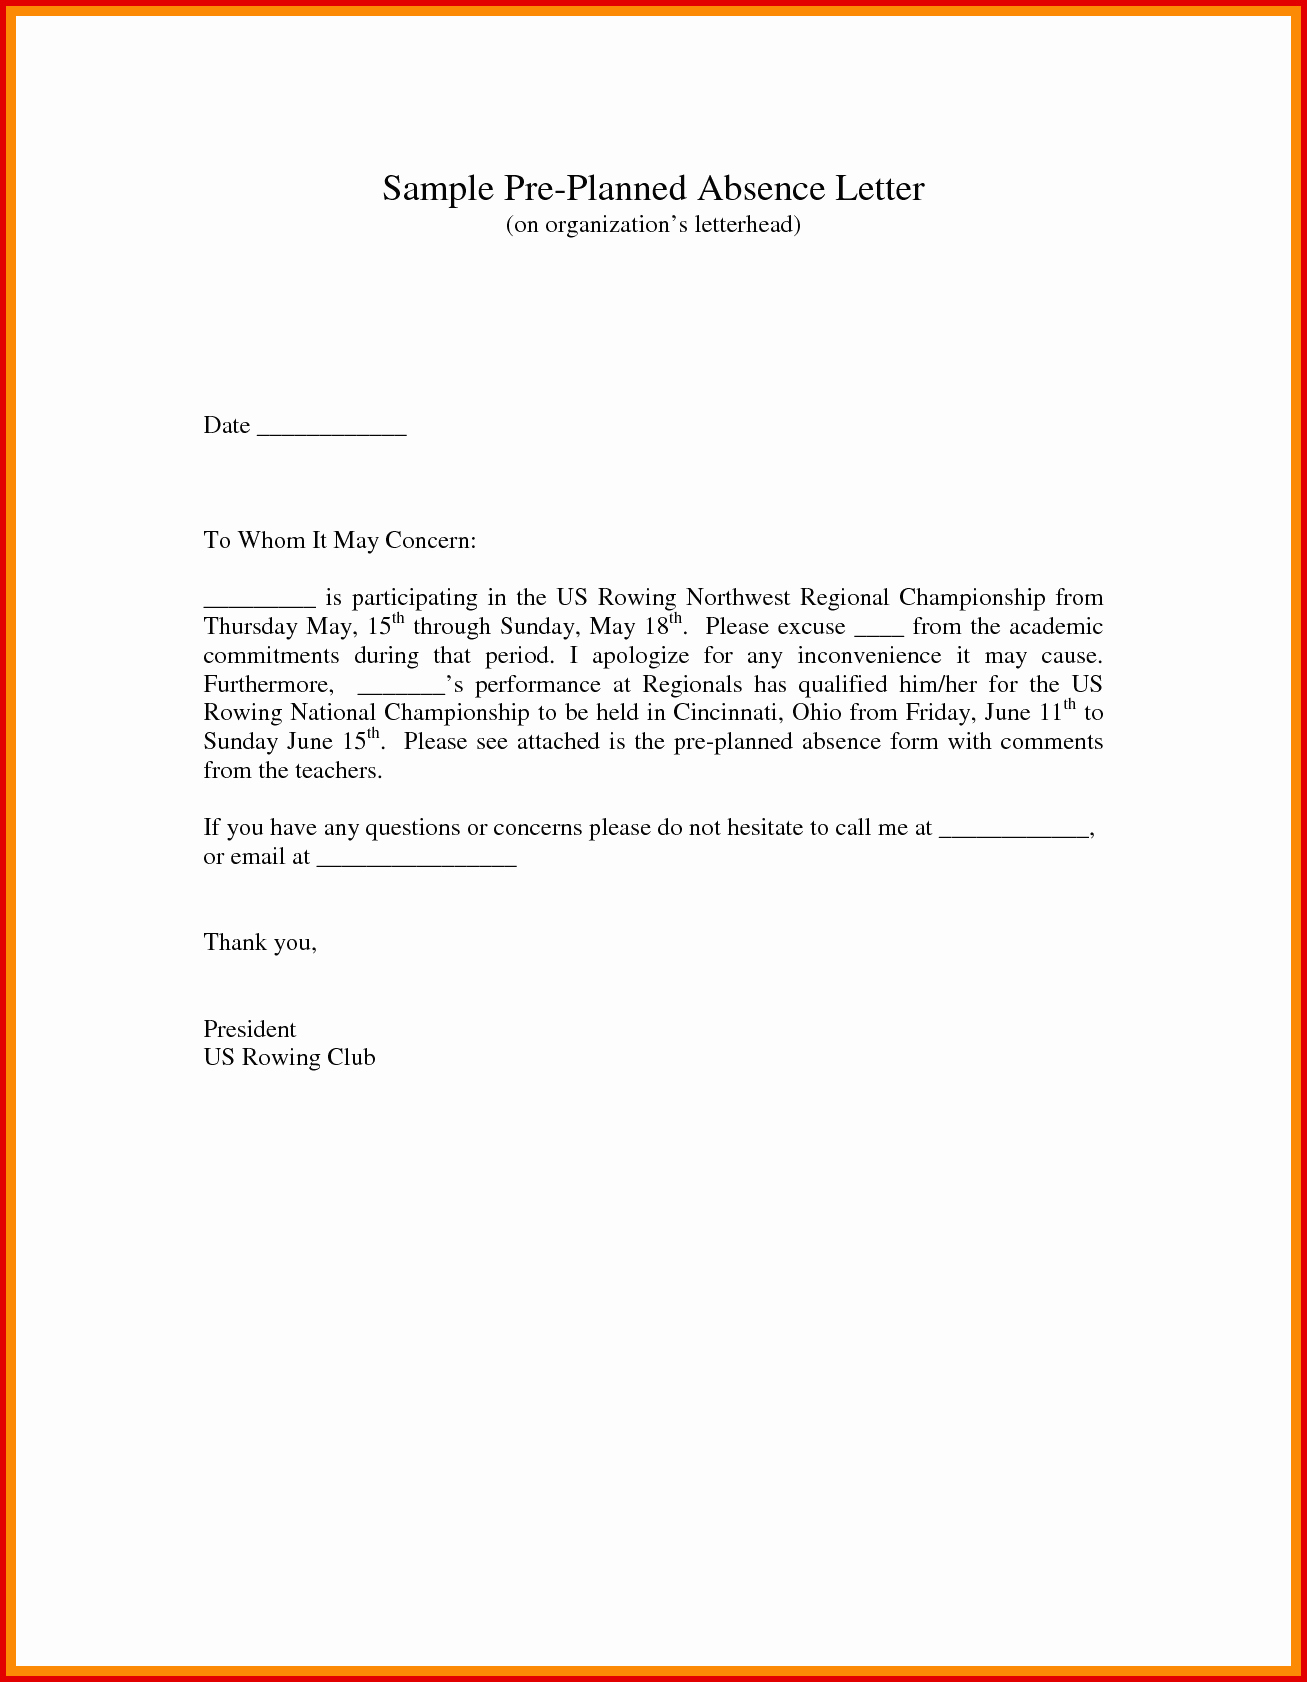 Sample Absence Letter to Teacher Awesome 4 5 Excuse Letter for School for Being Sick